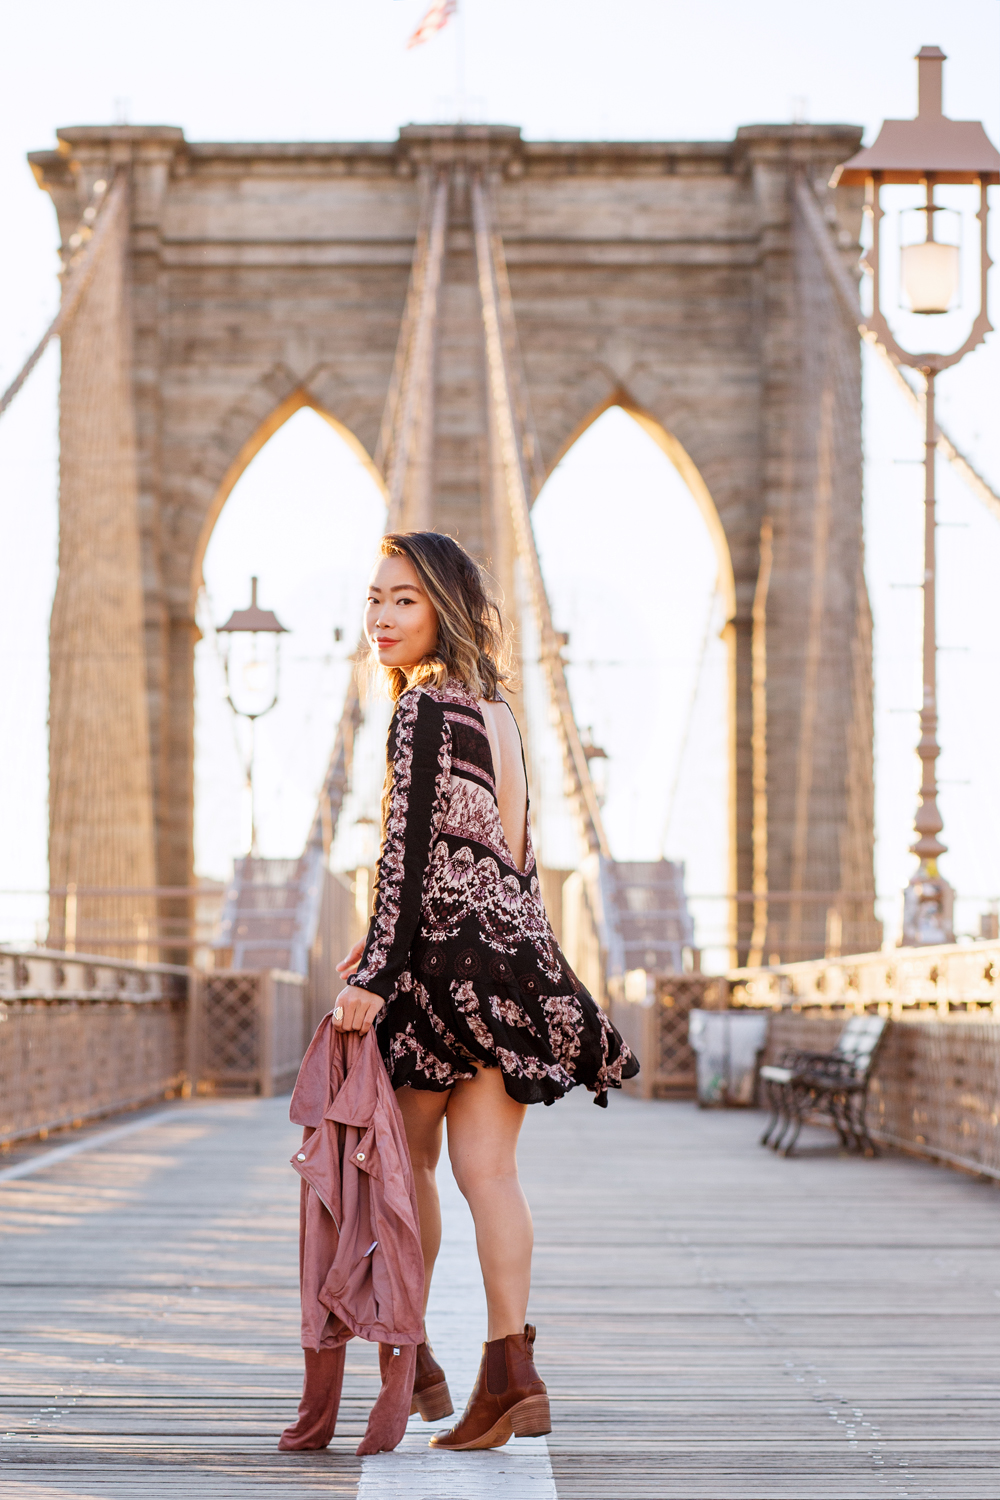 03brooklynbridge-nyc-newyork-sunrise-travel-style-fashion